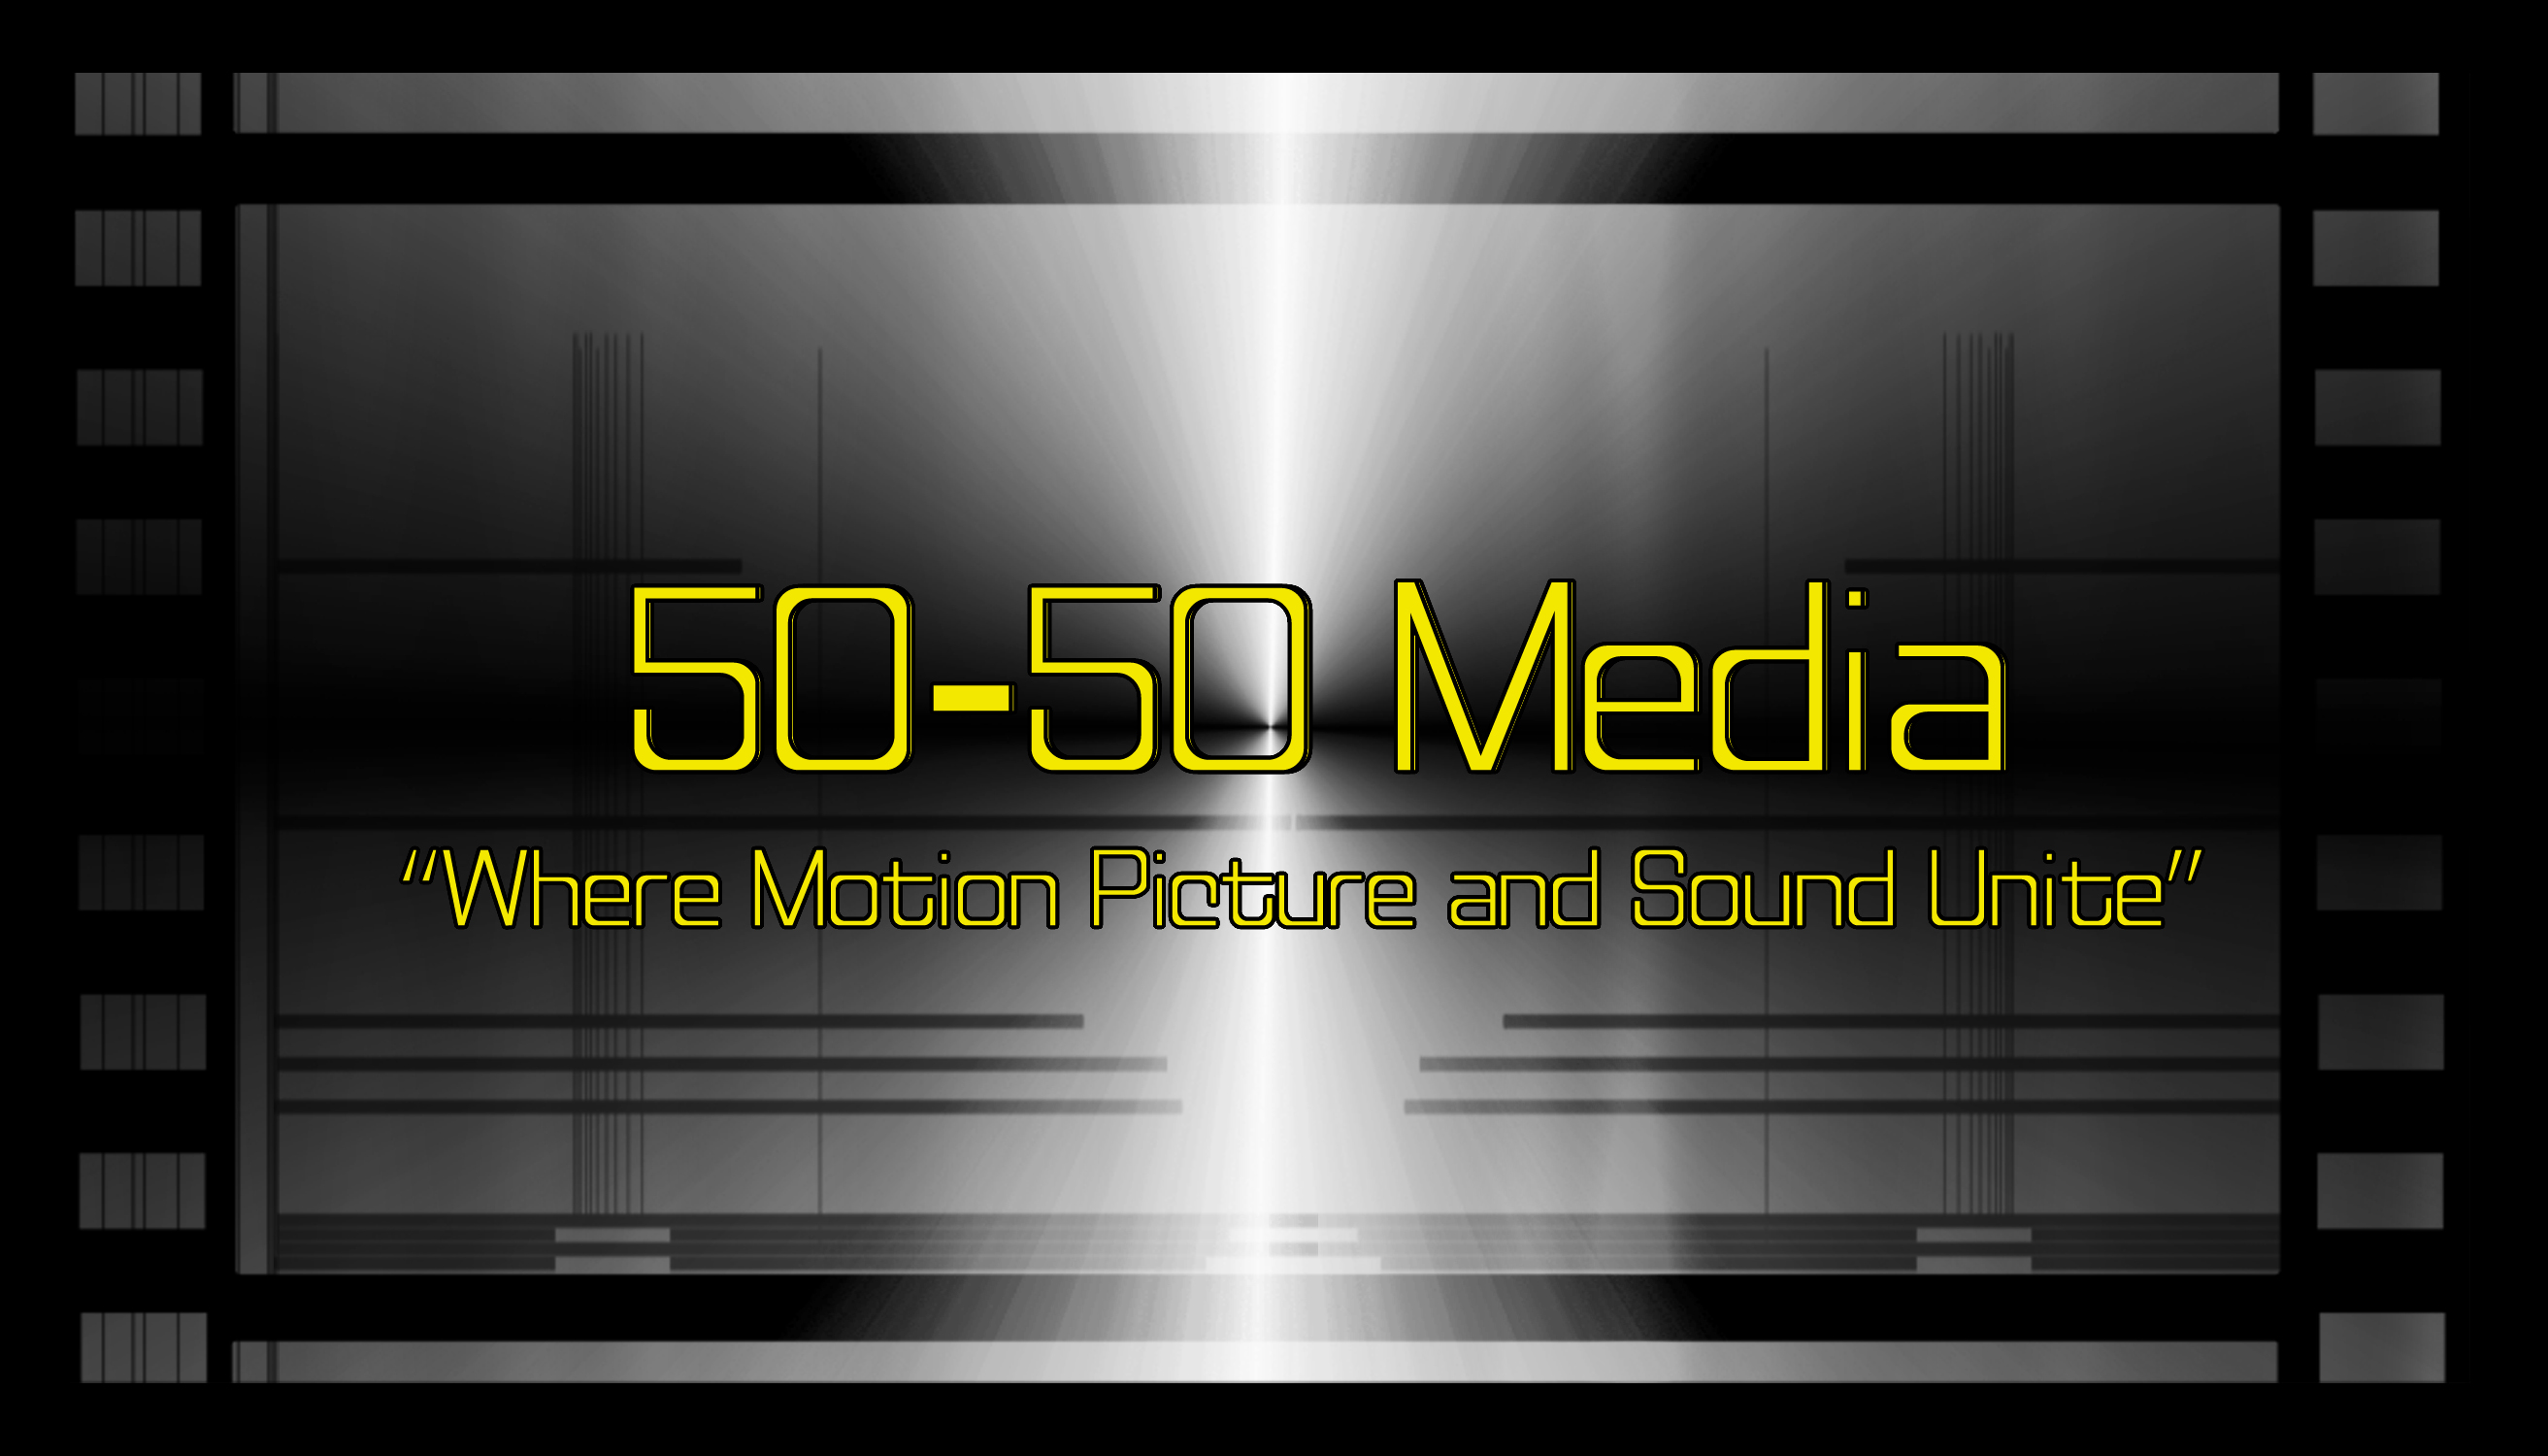 50-50 Media  Where Moition Picture and Sound Unite